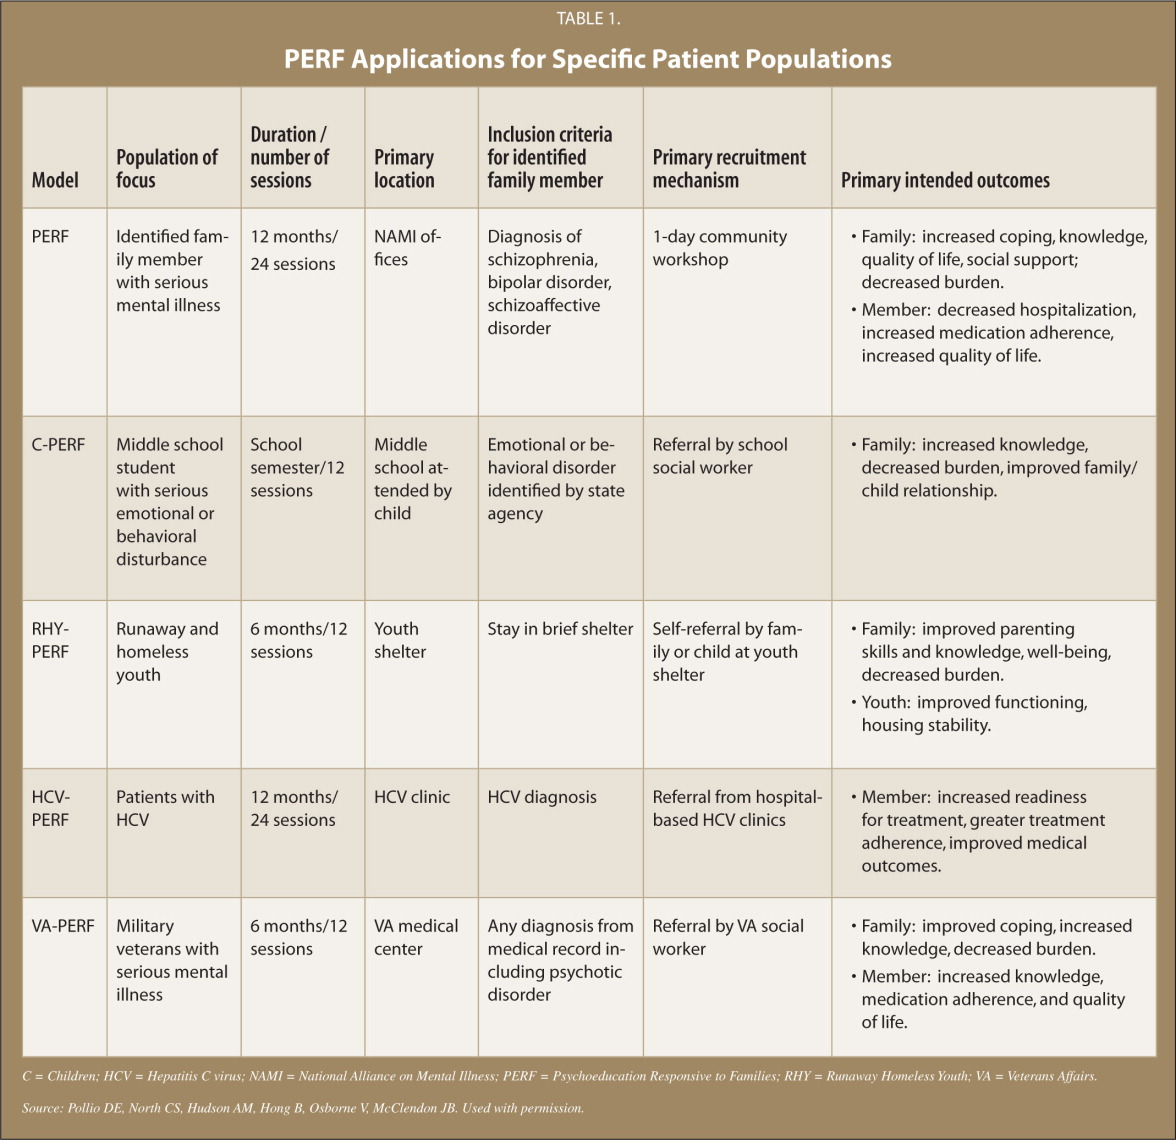 PERF Applications for Specific Patient Populations